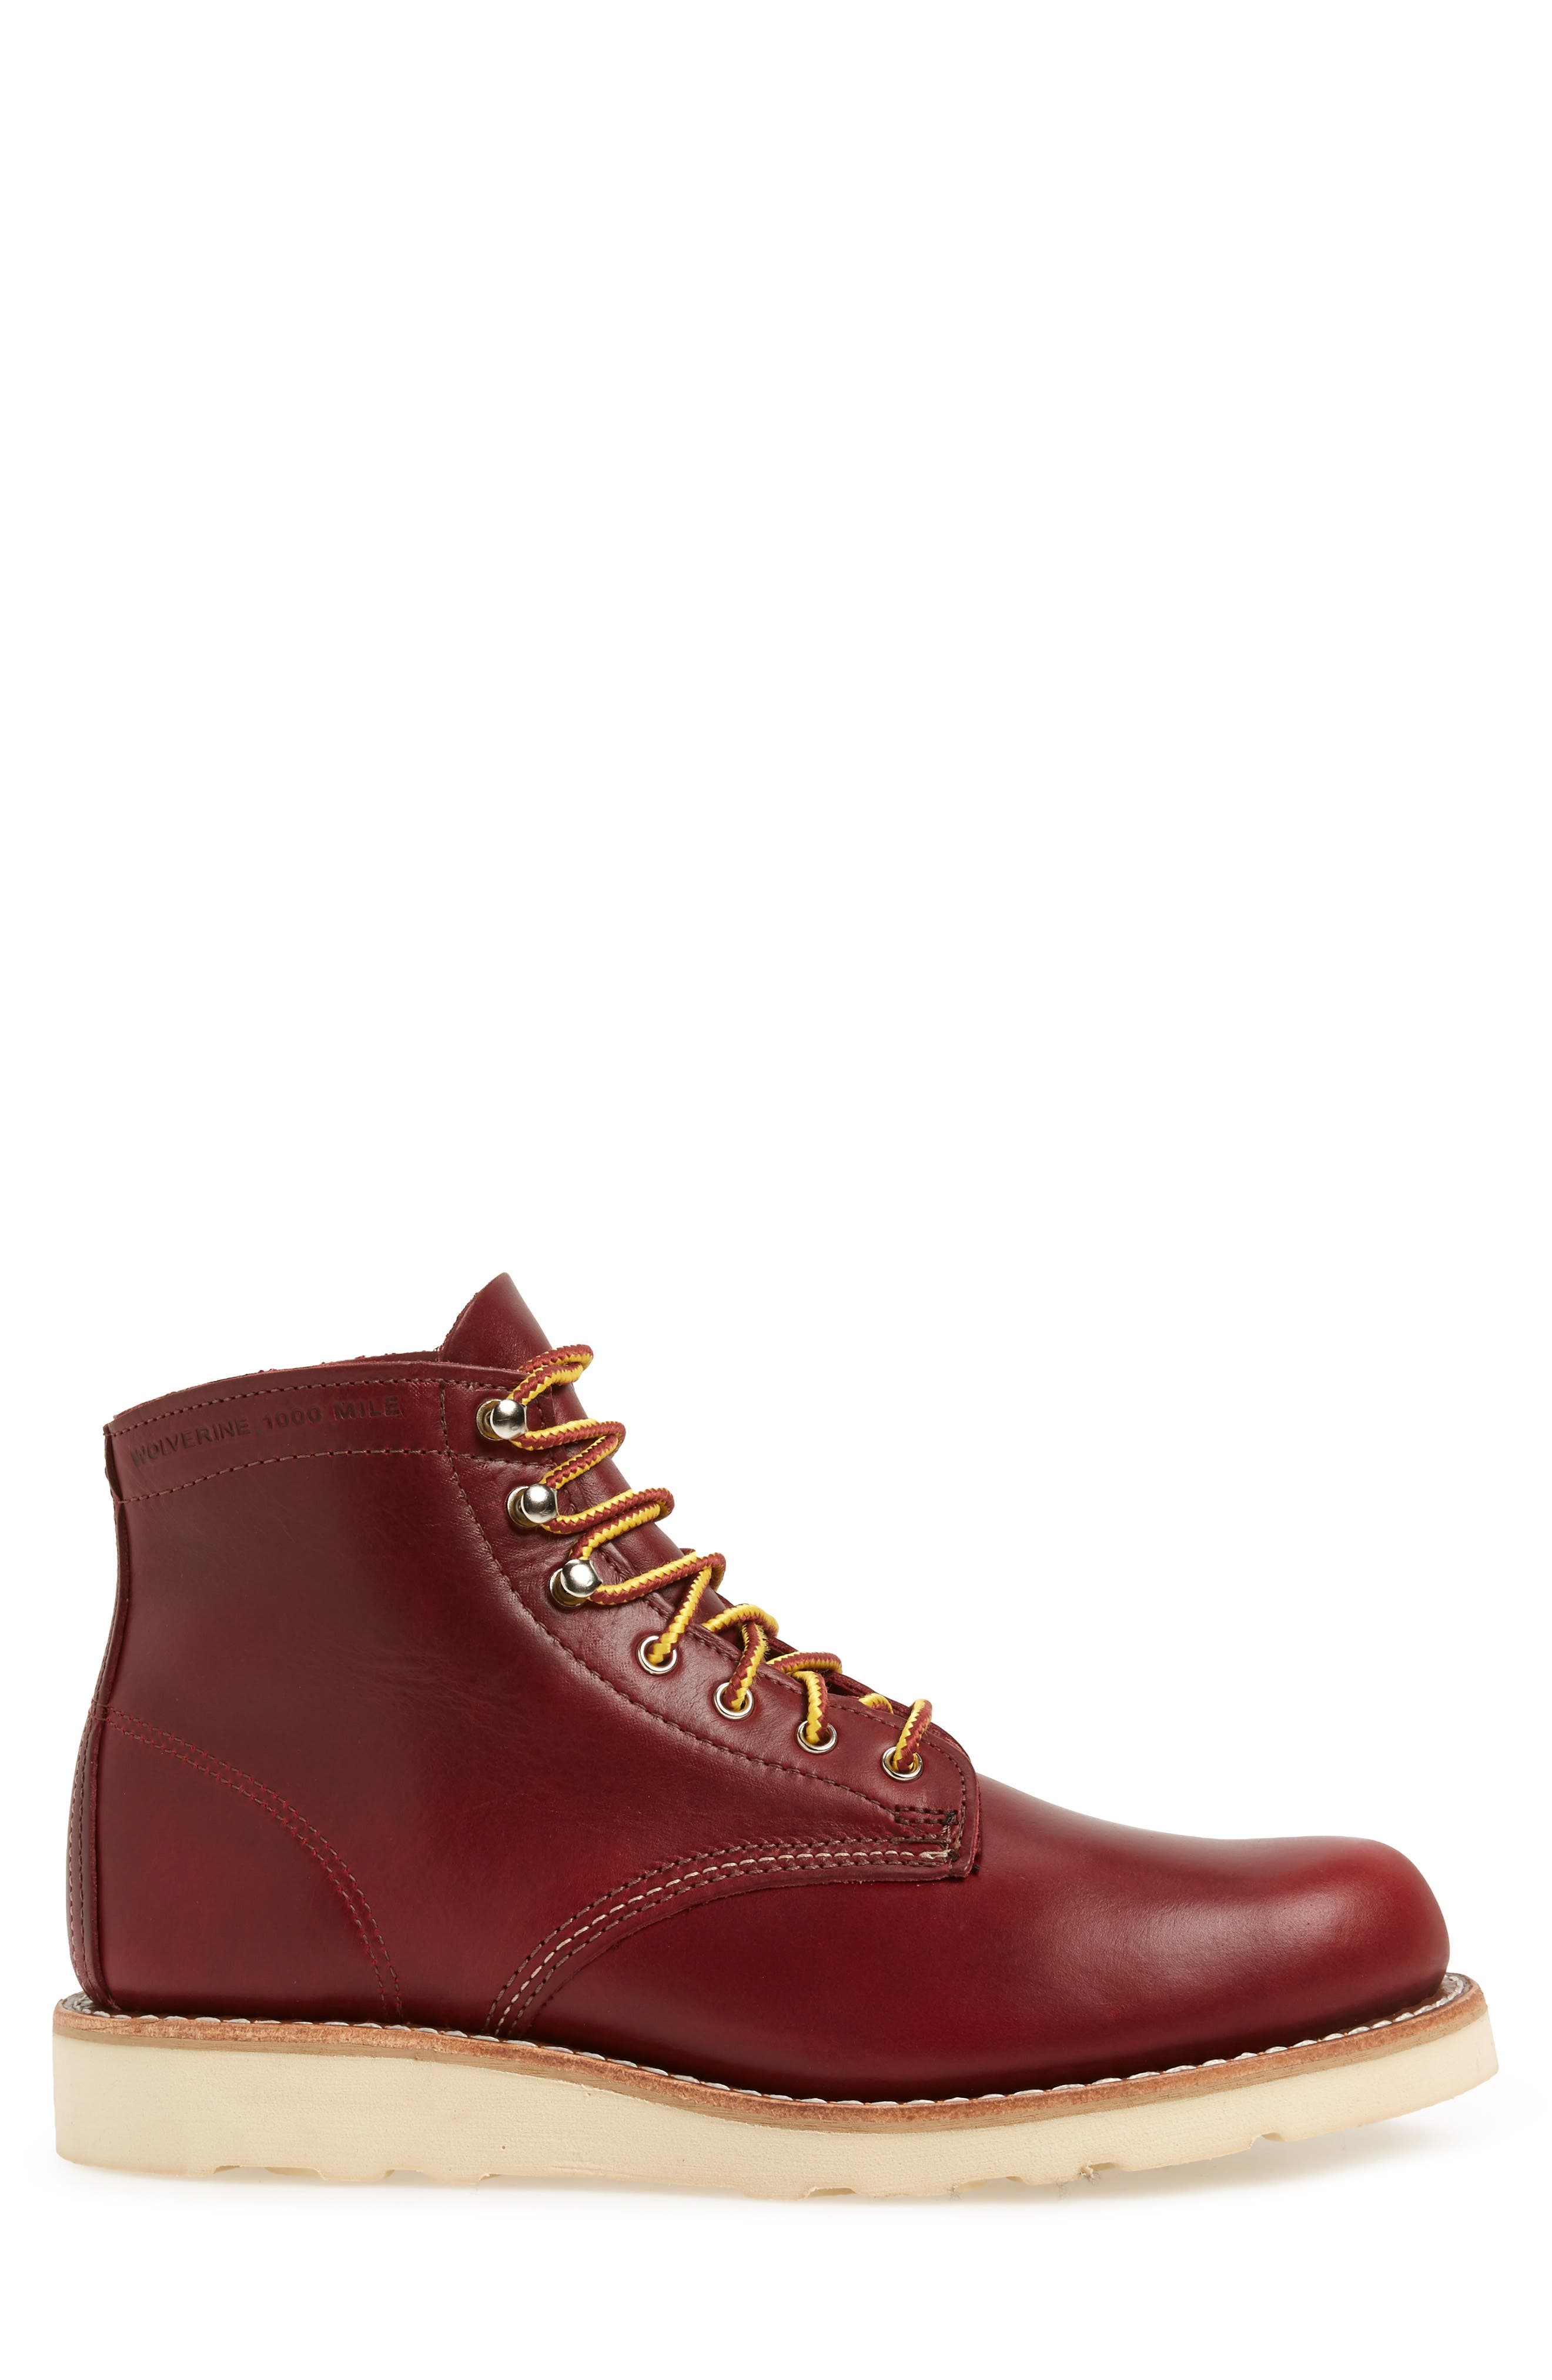 1000 Mile Wedge Boot,                             Alternate thumbnail 3, color,                             RED